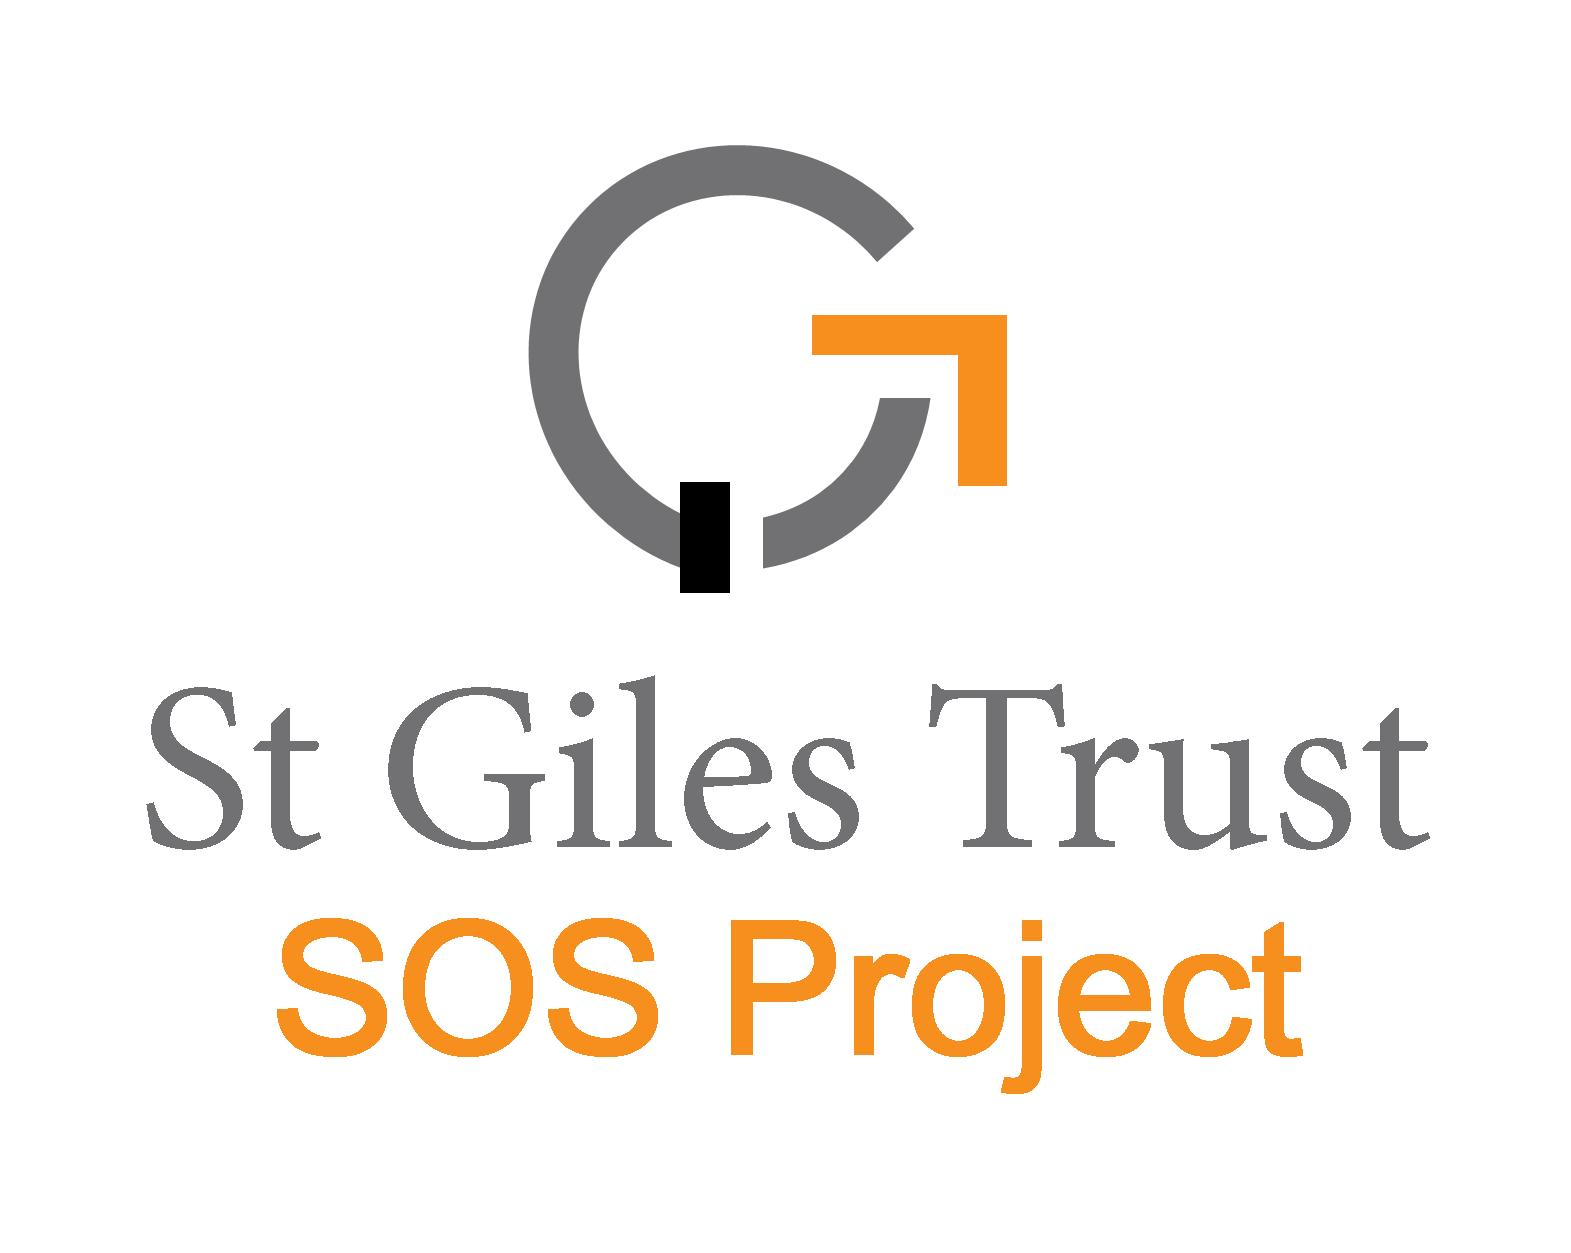 SOS: London's largest gangs intervention project logo